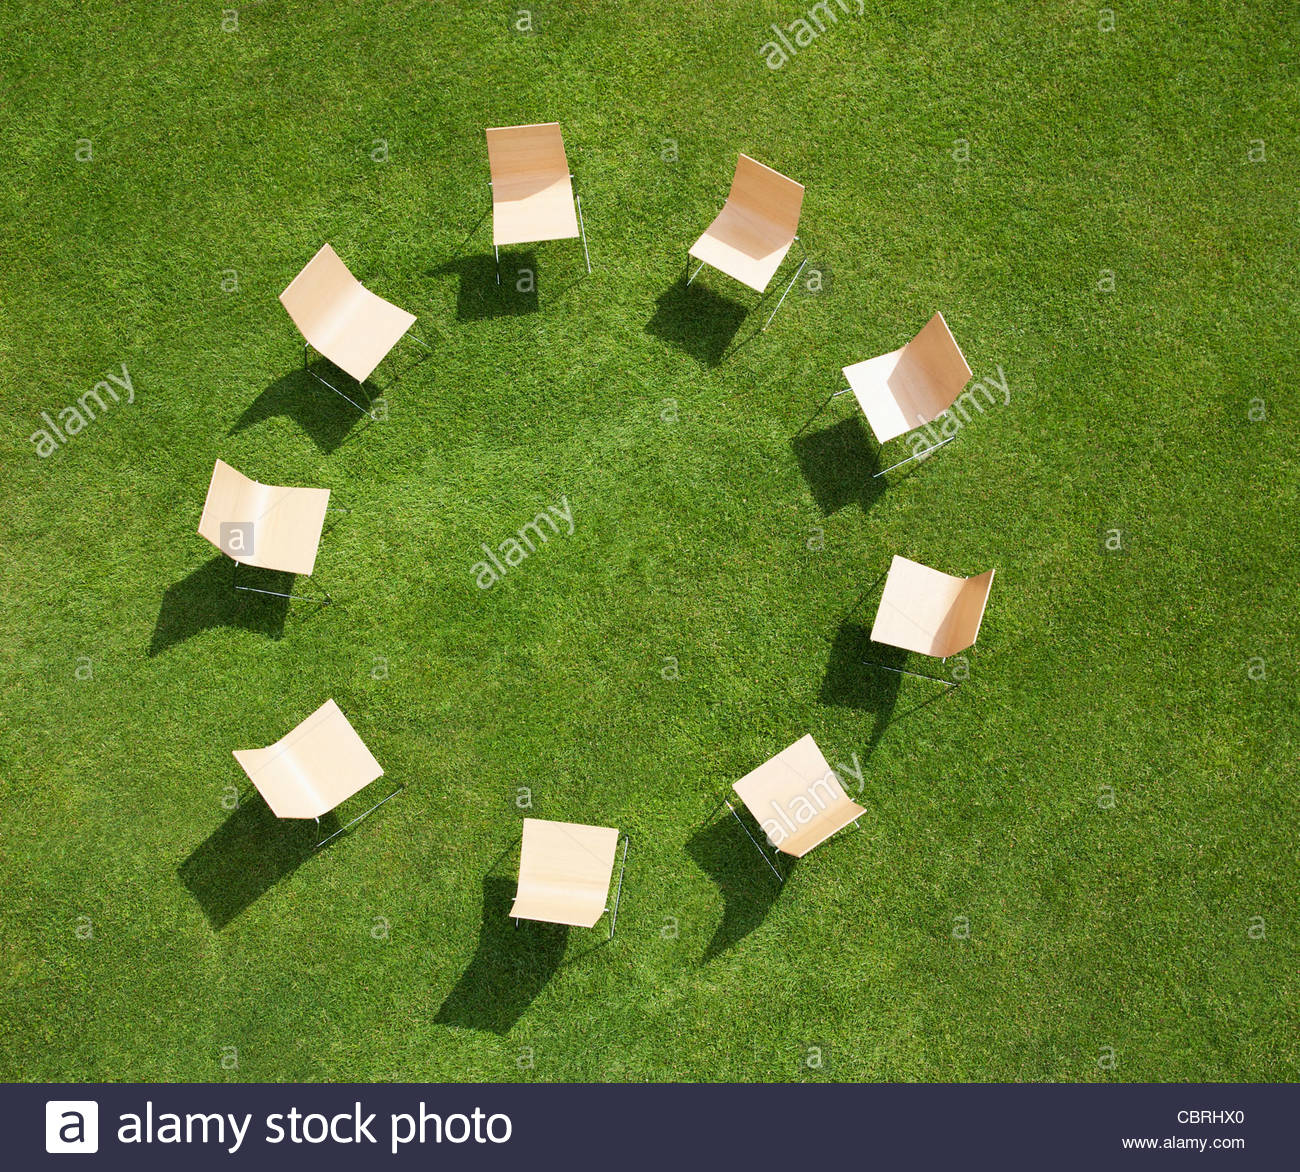 Chairs in circle formation on grass - Stock Image